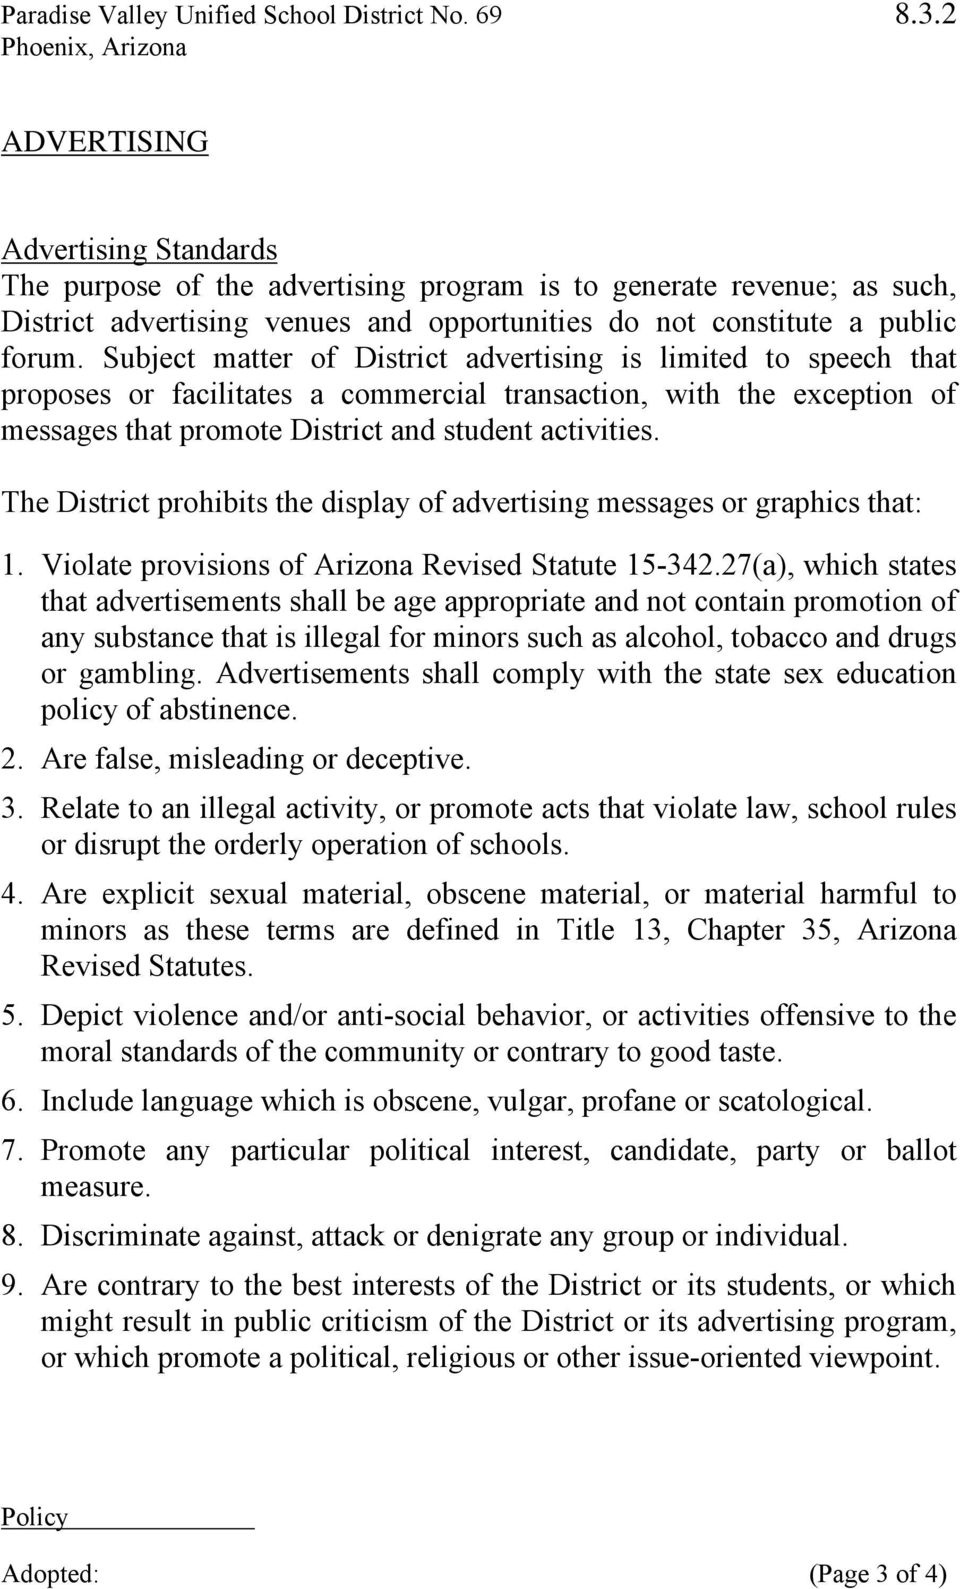 The District prohibits the display of advertising messages or graphics that: 1. Violate provisions of Arizona Revised Statute 15-342.